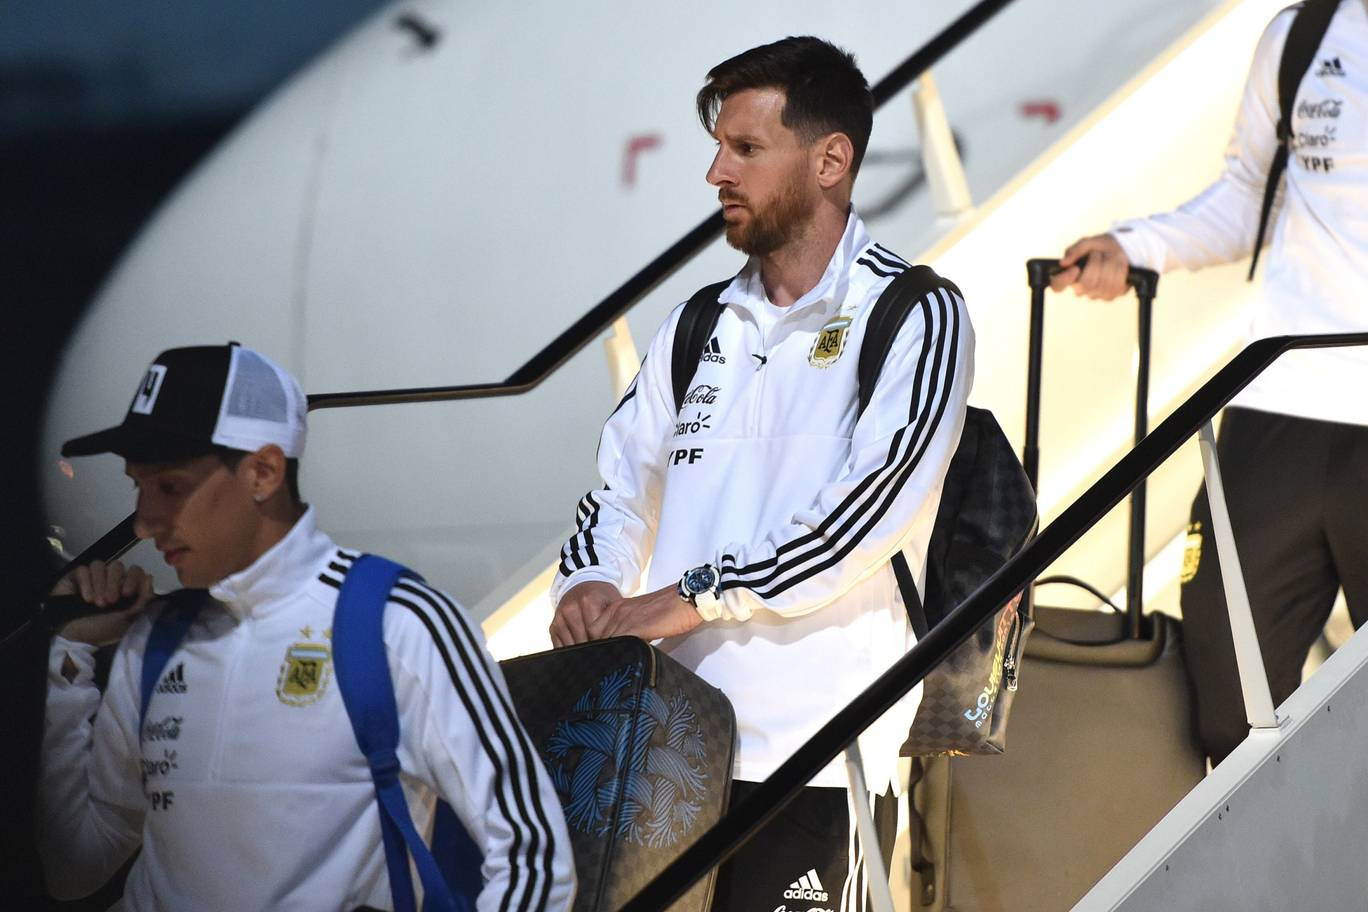 Argentinas forward Lionel Messi R disembarks from a plane at the Zhukovsky airport near Moscow as Argentinas national football team arrives ahead of the Russia 2018 World Cup